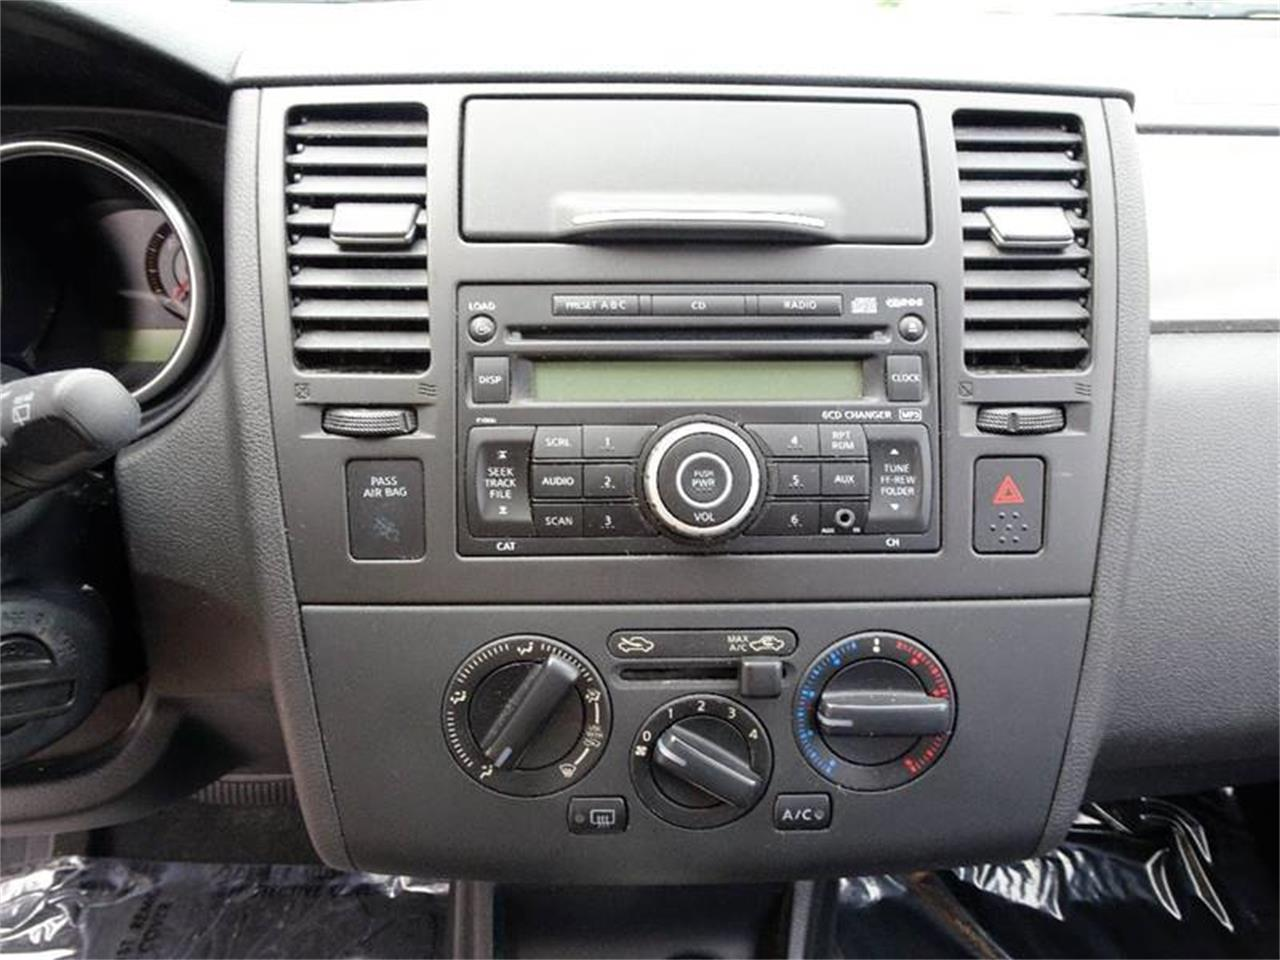 2007 Nissan Versa for sale in Hilton, NY – photo 52